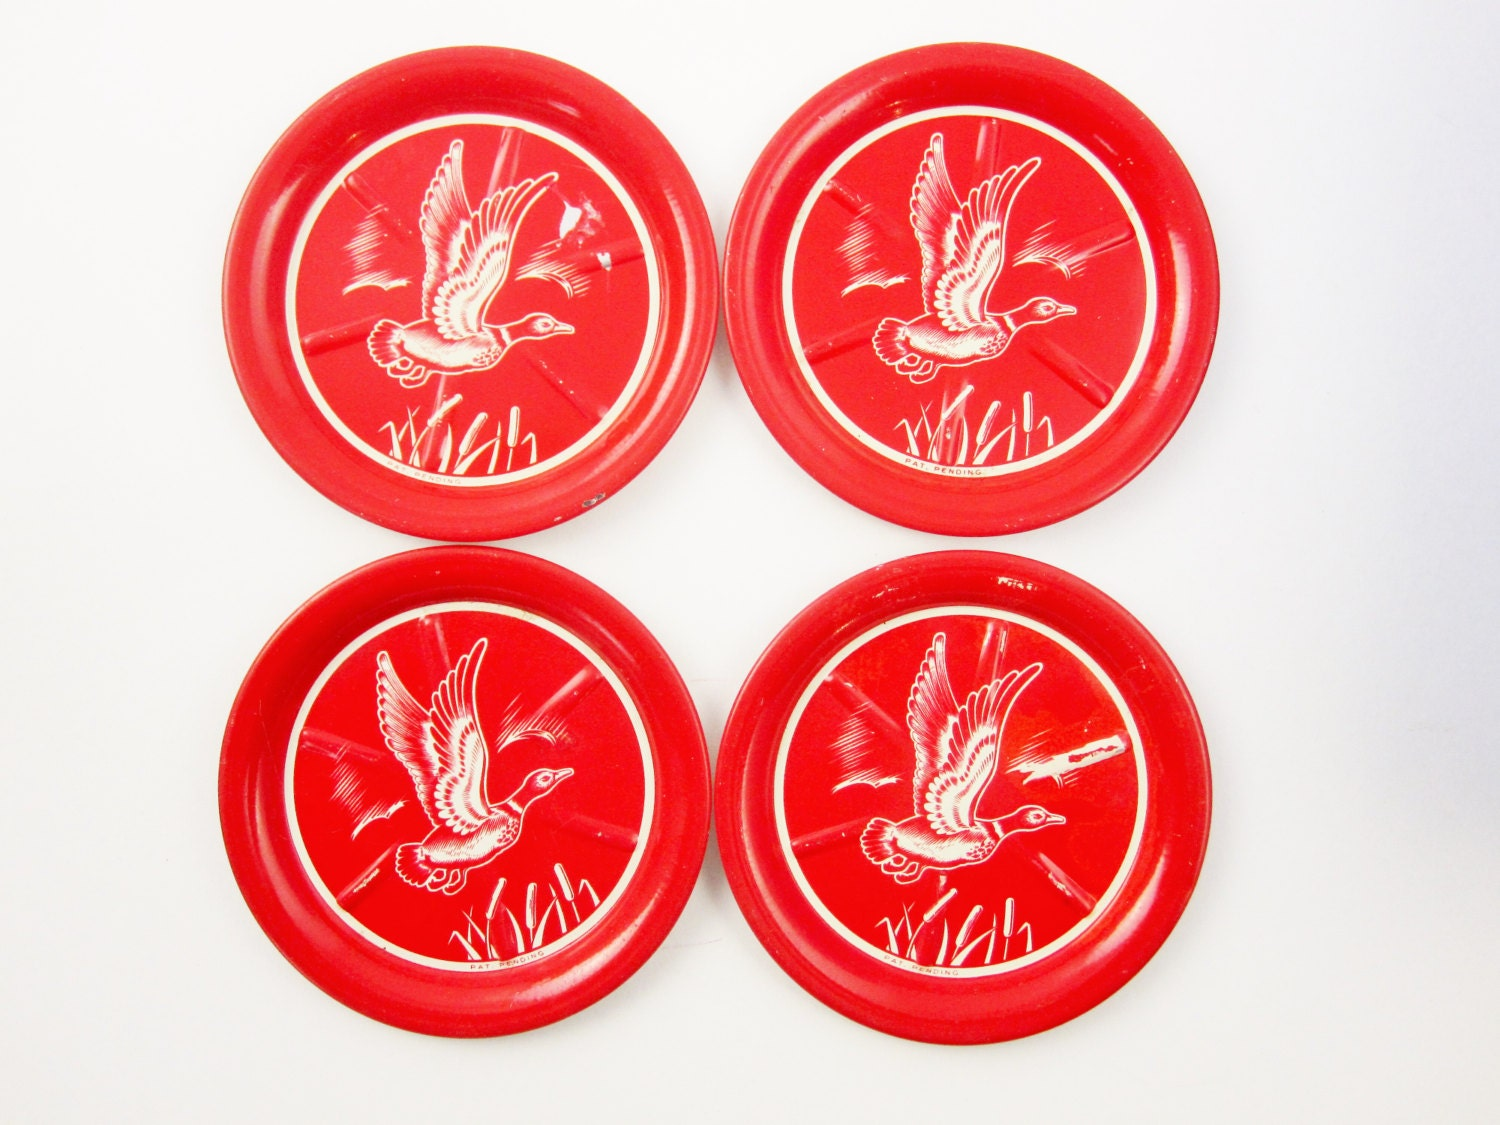 Four red coasters with duck graphics red sweaty drinks for Best coasters for sweaty drinks